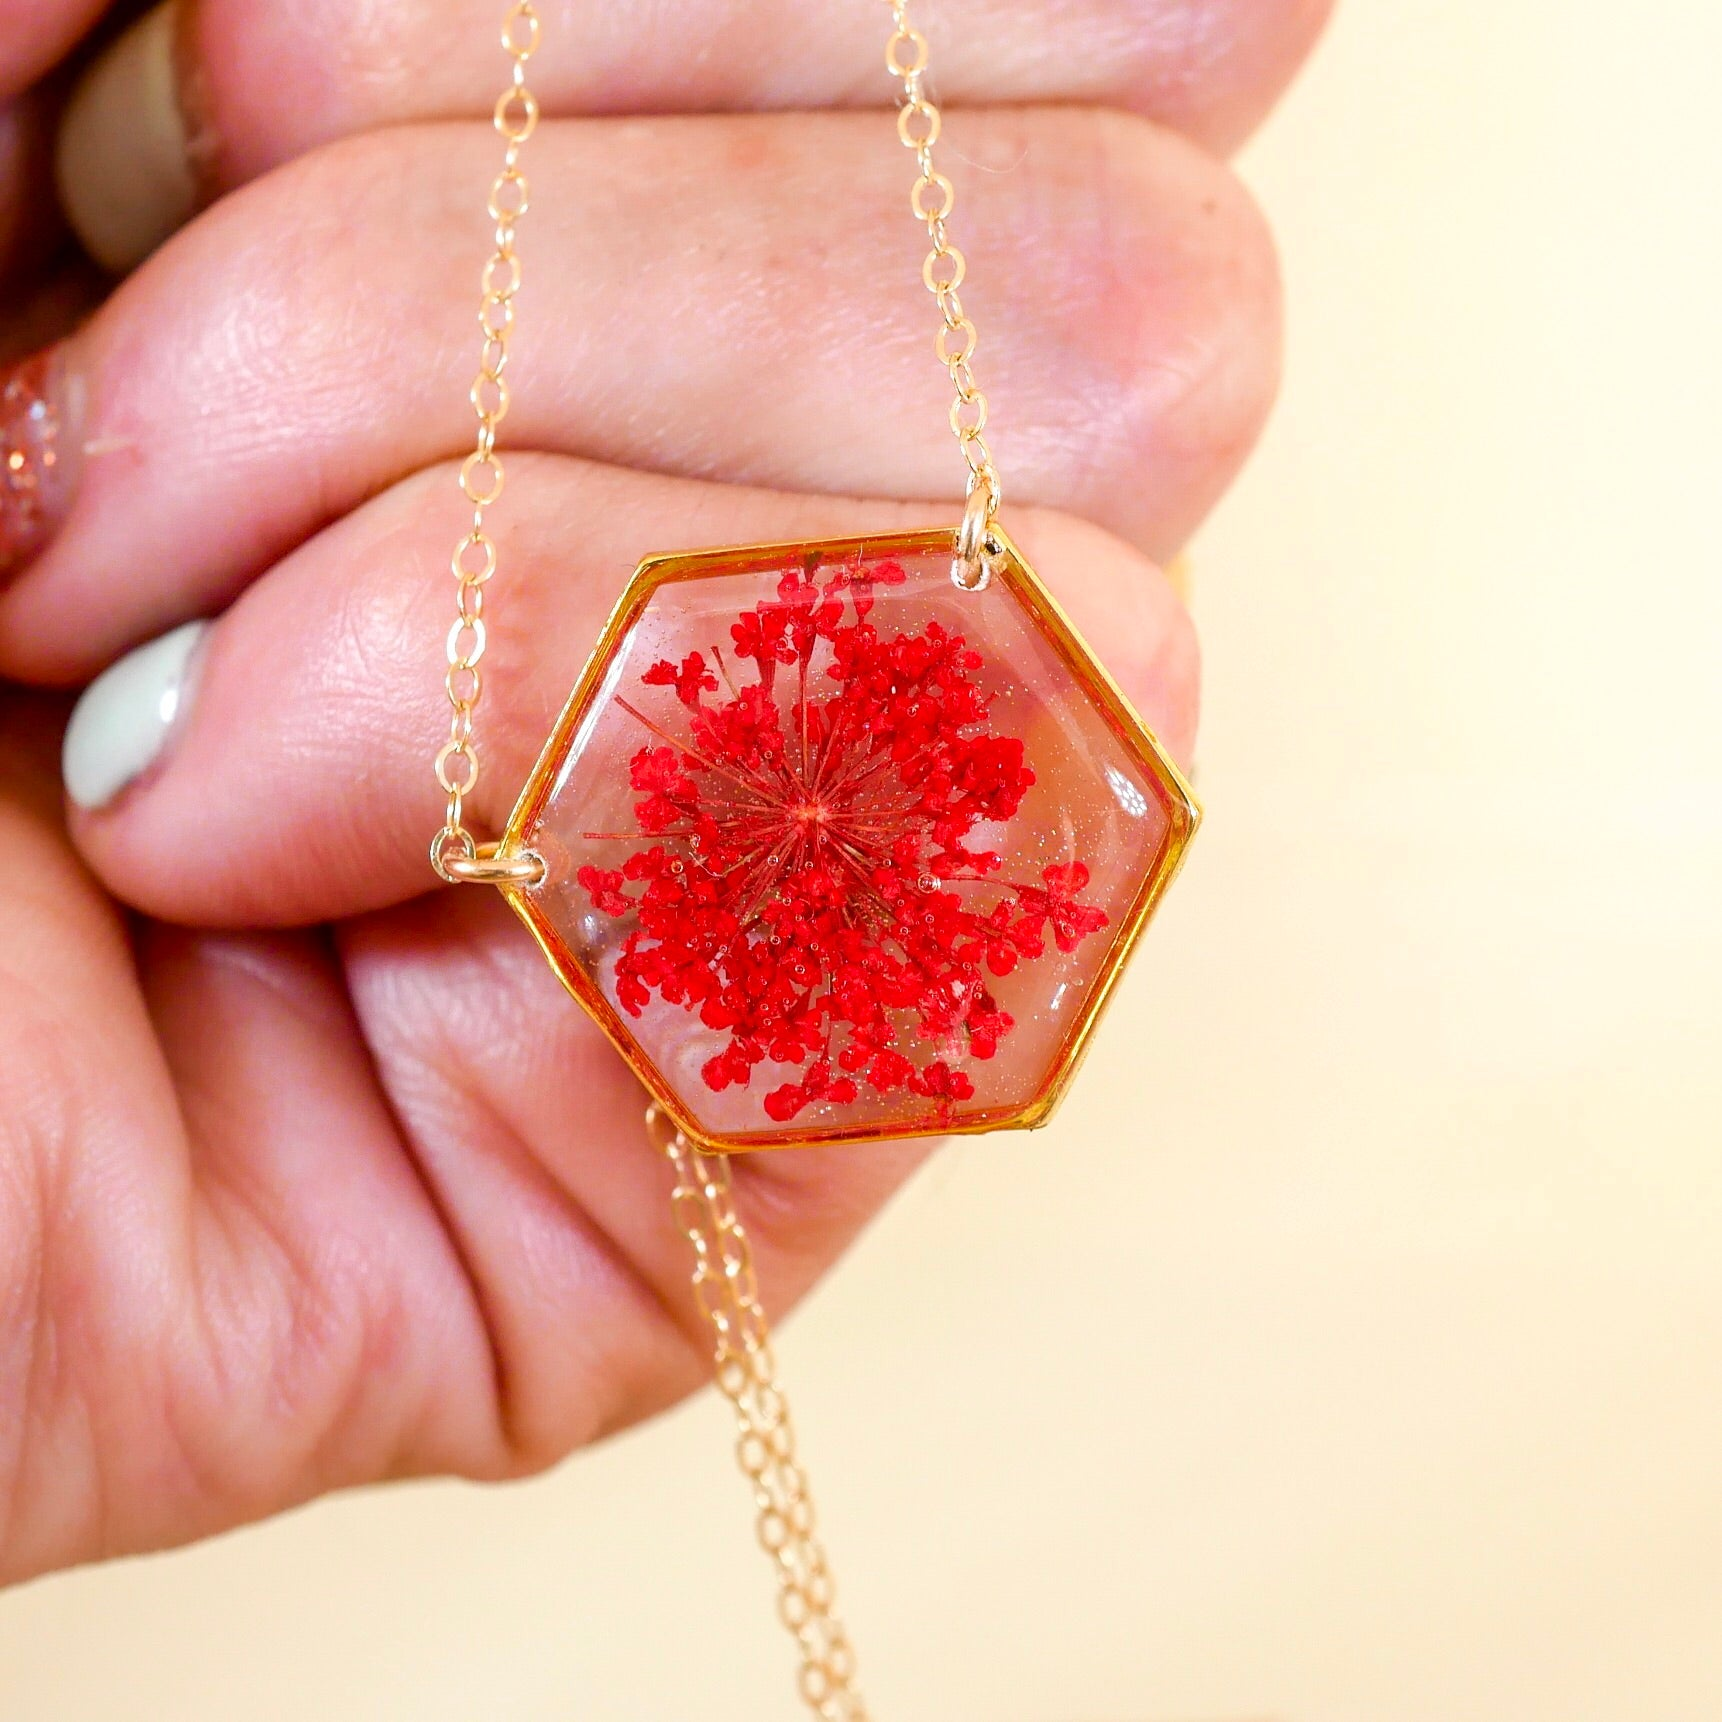 Red Queen Anne's lace Hexagon Necklace